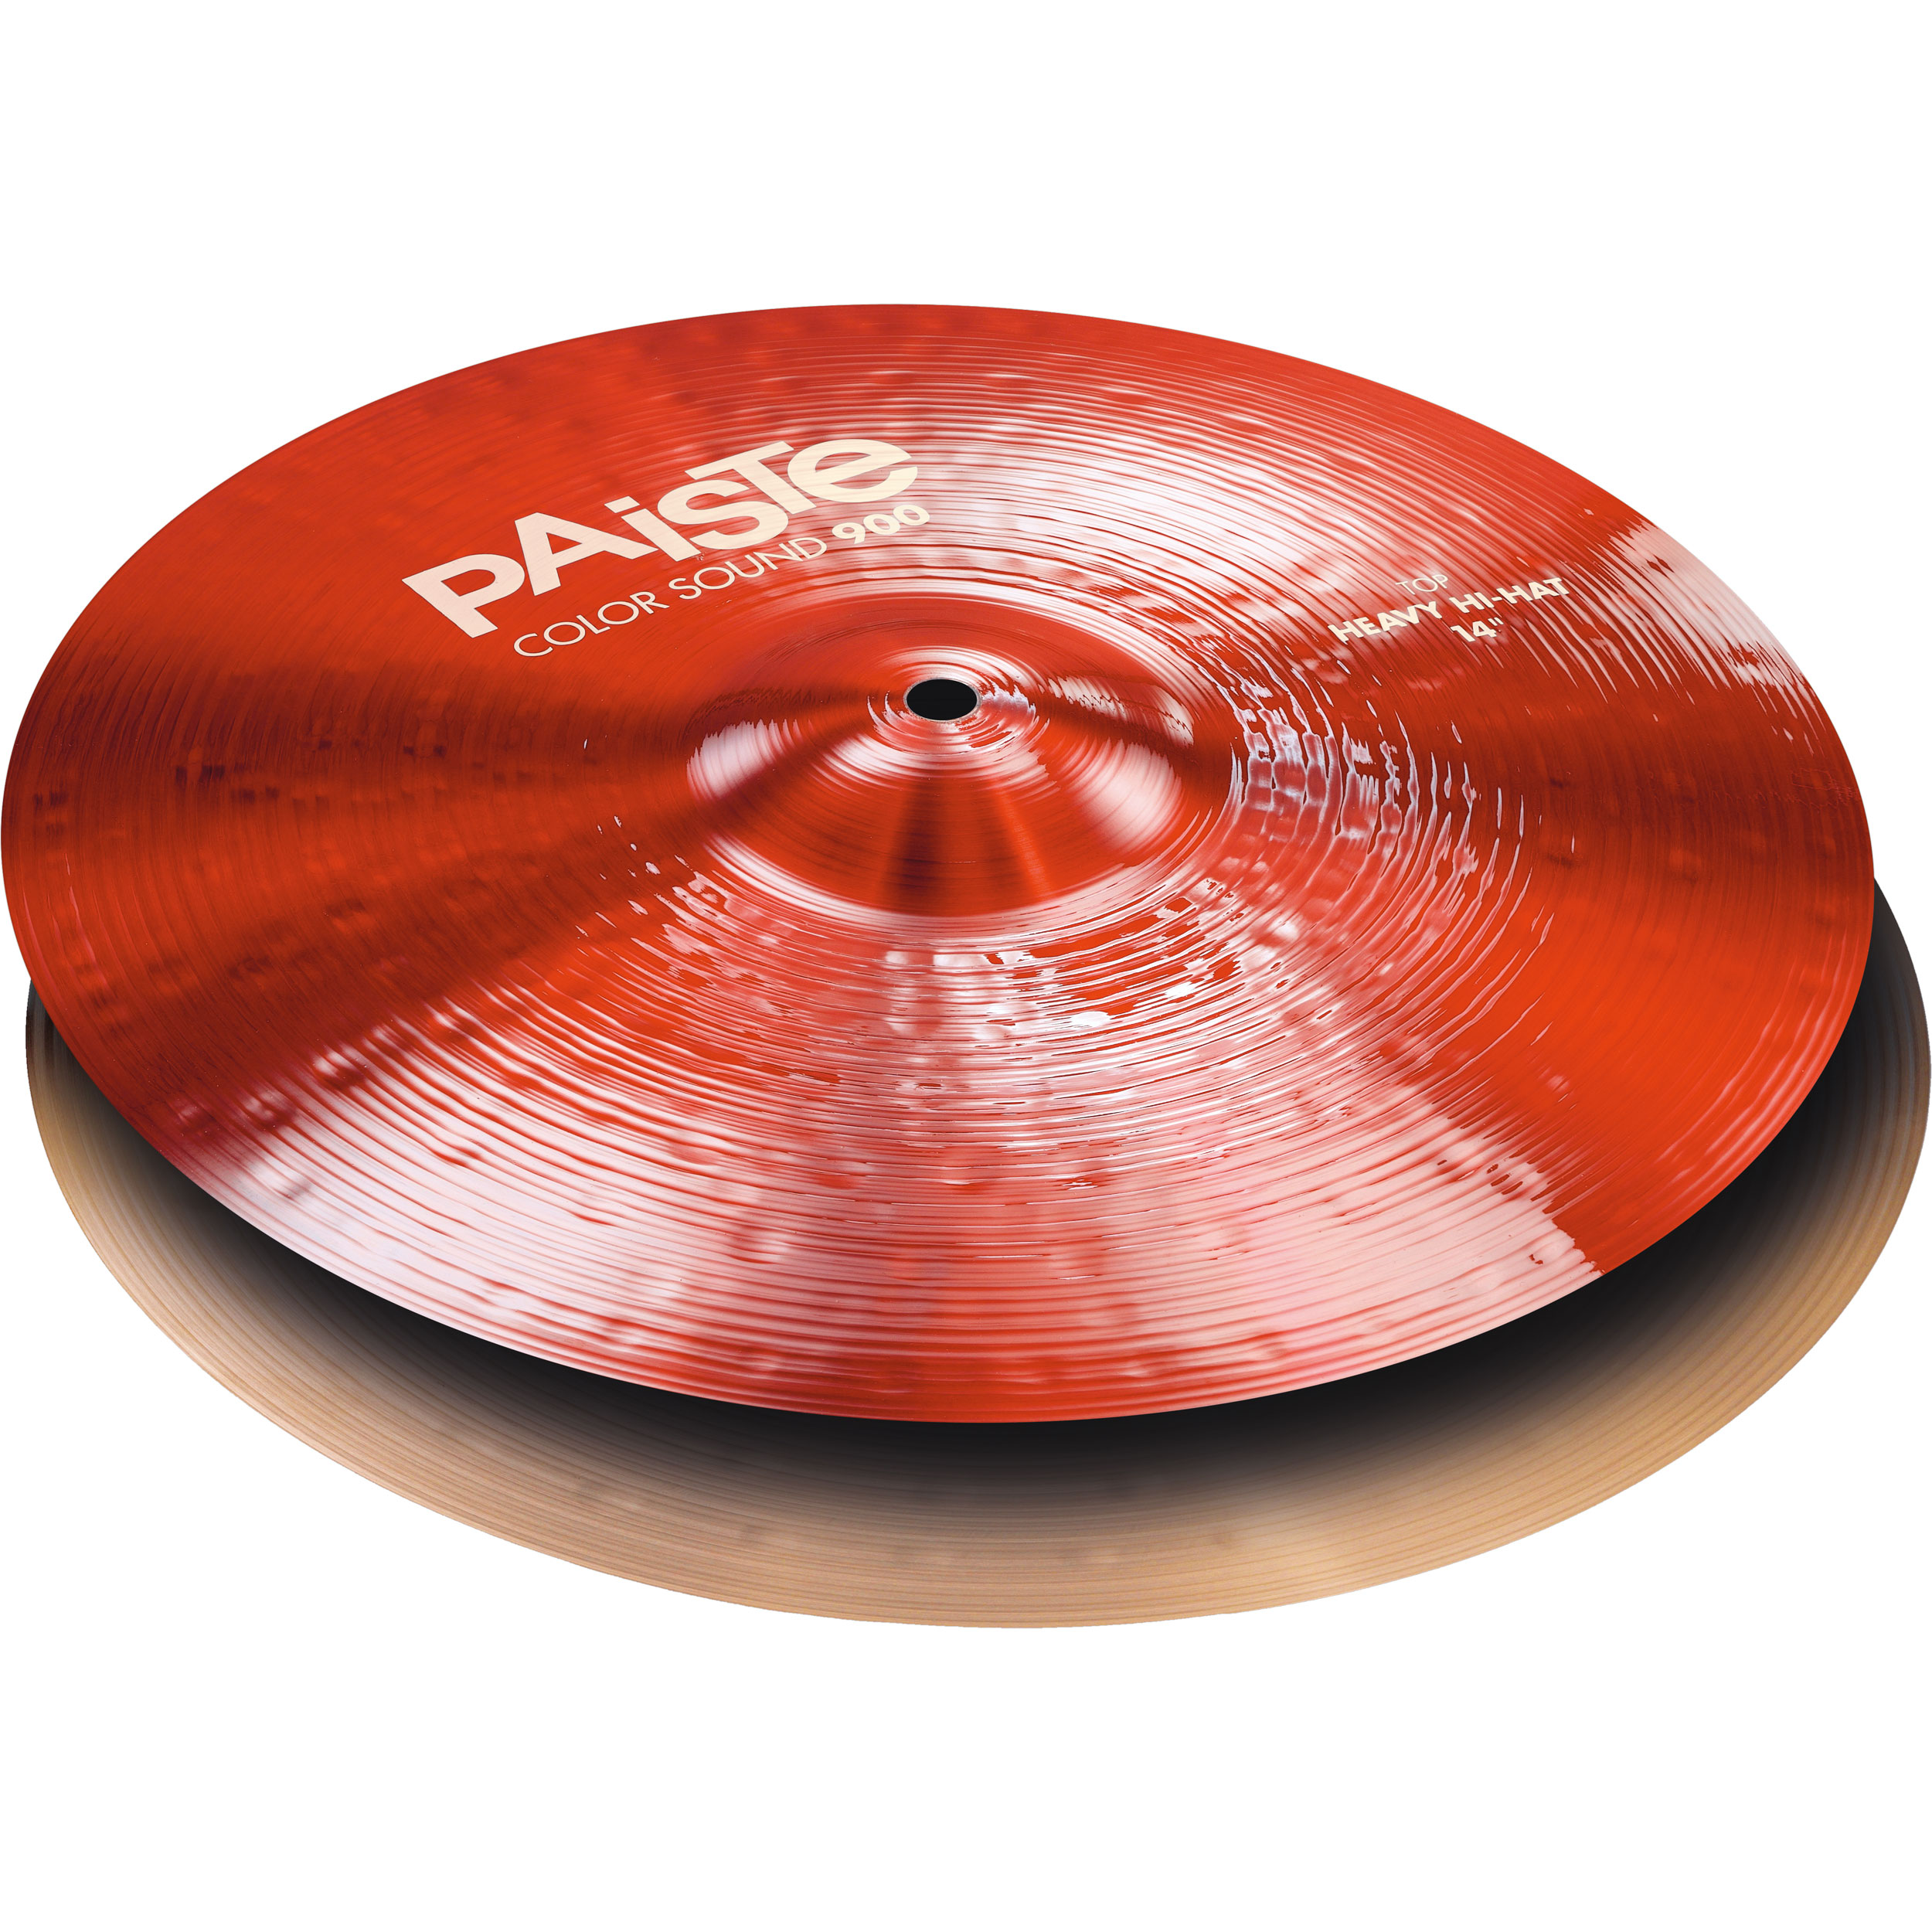 "Paiste 14"" Color Sound 900 Red Heavy Hi Hat Cymbals"